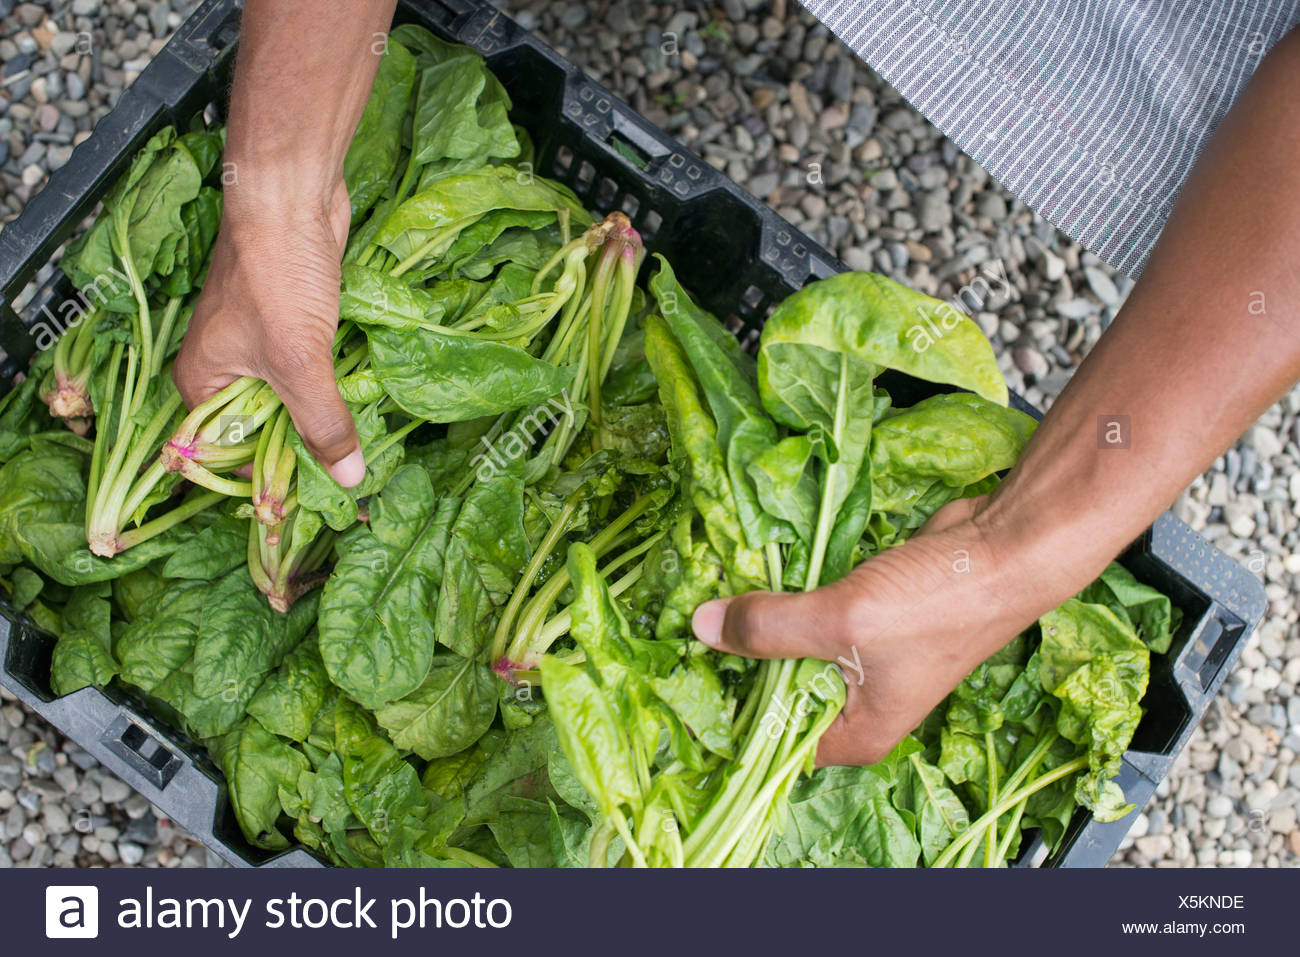 Organic Farming. A man packing green leaf vegetables. - Stock Image